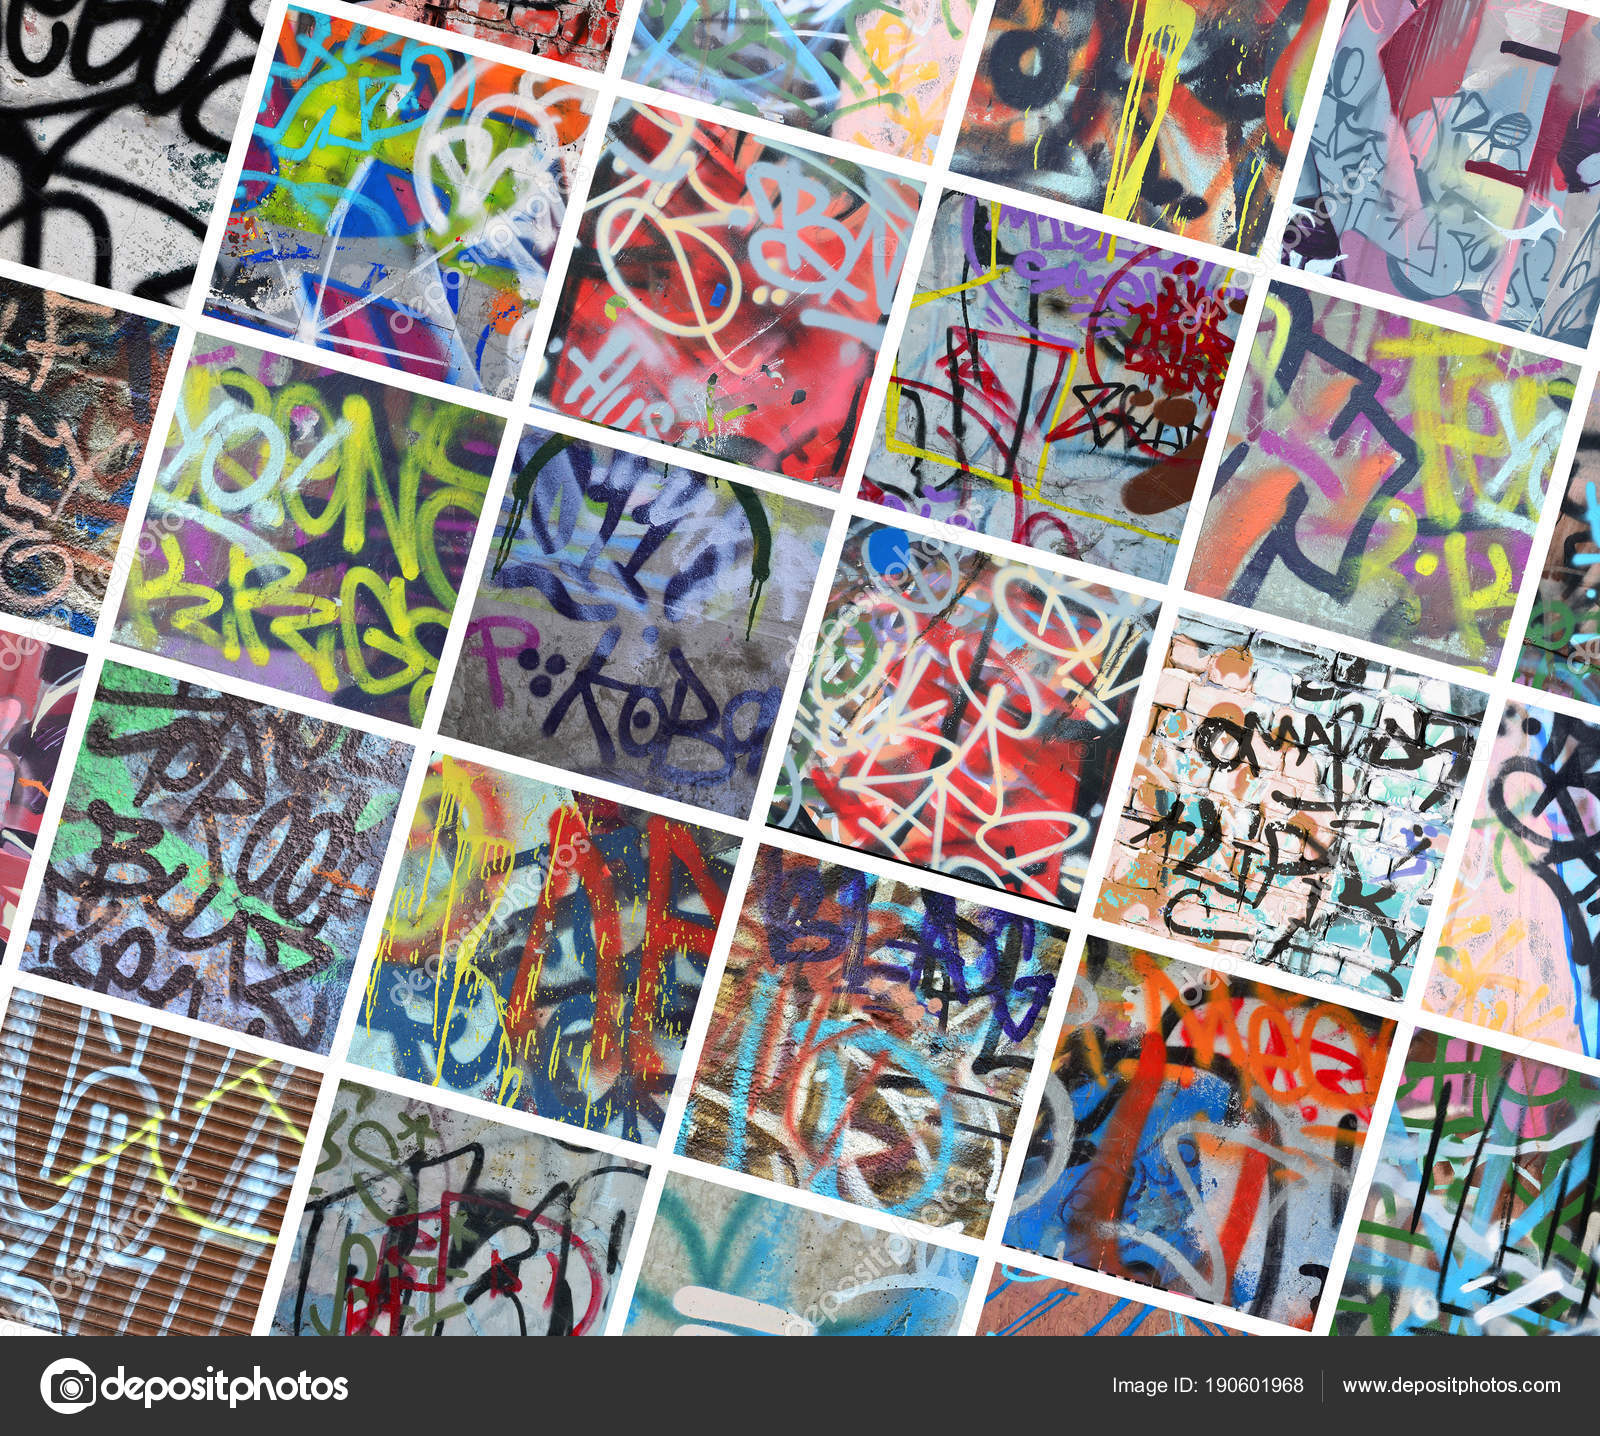 A set of many small fragments of tagged walls graffiti vandalism abstract background collage photo by mehaniq